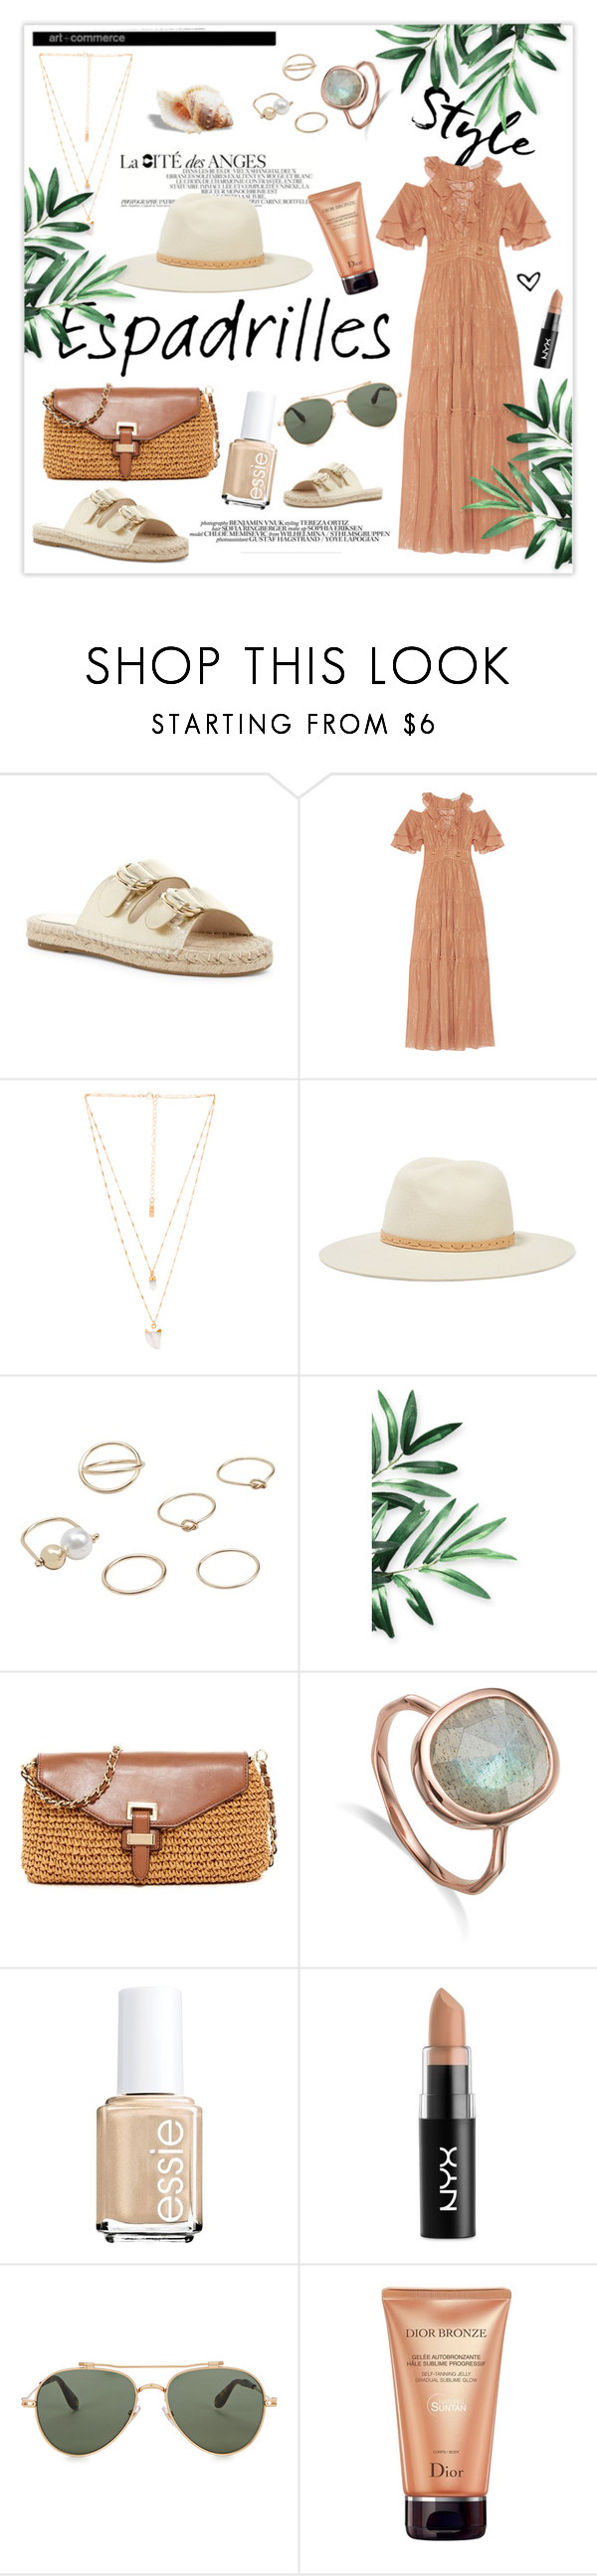 """Step into Summer: Espadrilles"" by mars ❤ liked on Polyvore featuring Joie, Rachel Zoe, Natalie B, rag & bone, MANGO, MICHAEL Michael Kors, NYX, Chloé, Givenchy and Christian Dior"